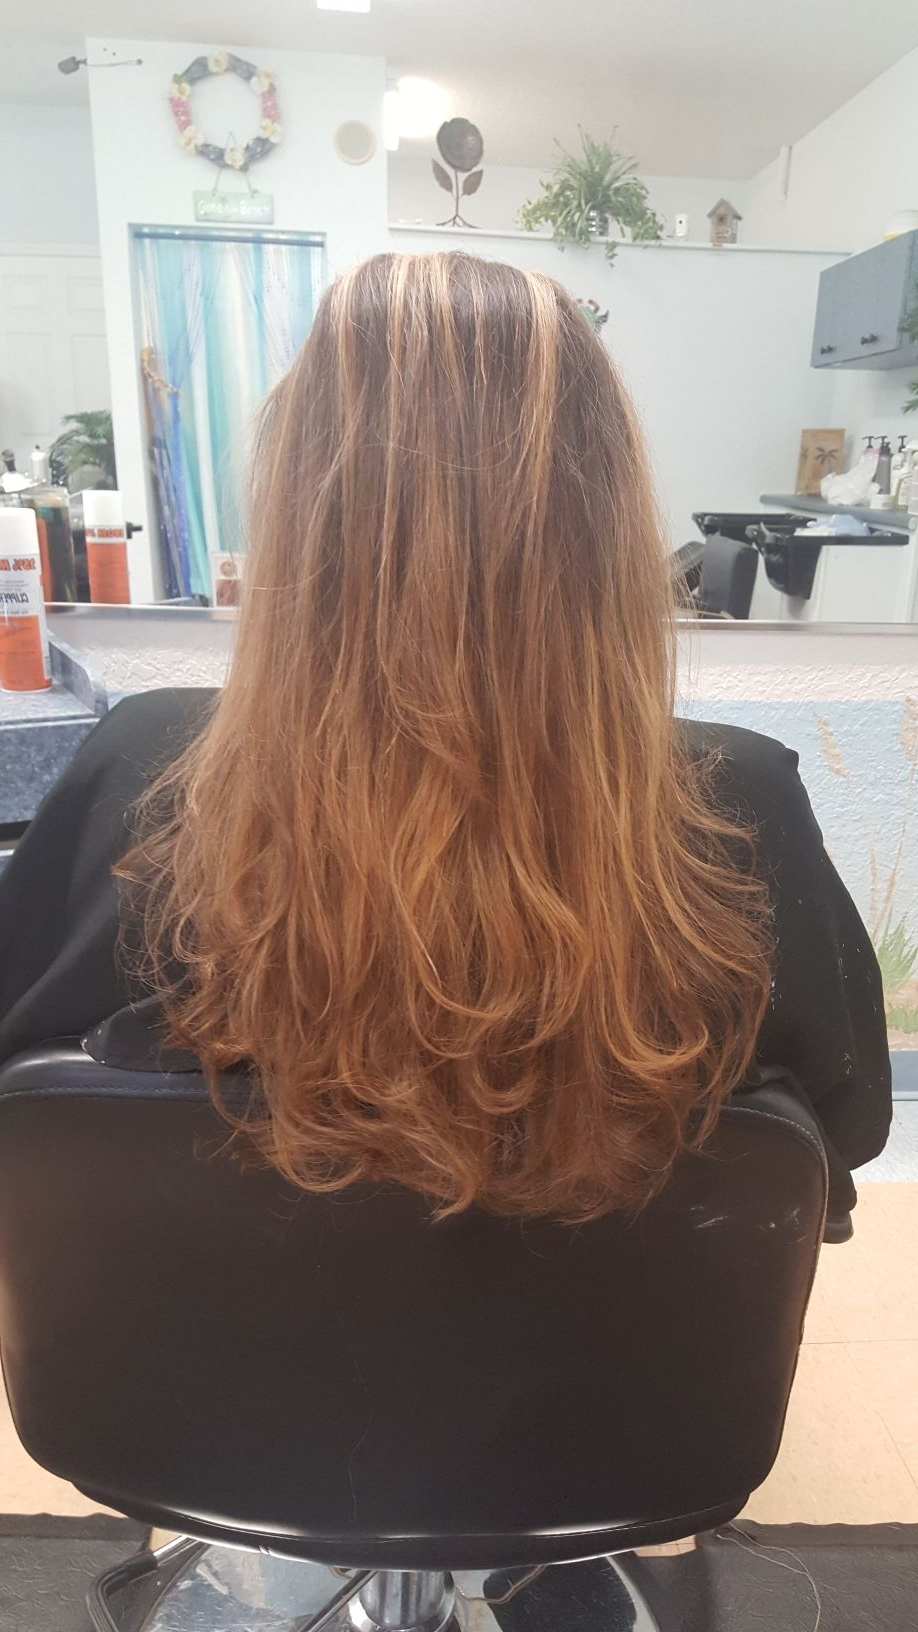 After Her Color And Haircut | Cuts And Color @tropical Waves In Waves Of Color Shag Haircuts (View 13 of 20)